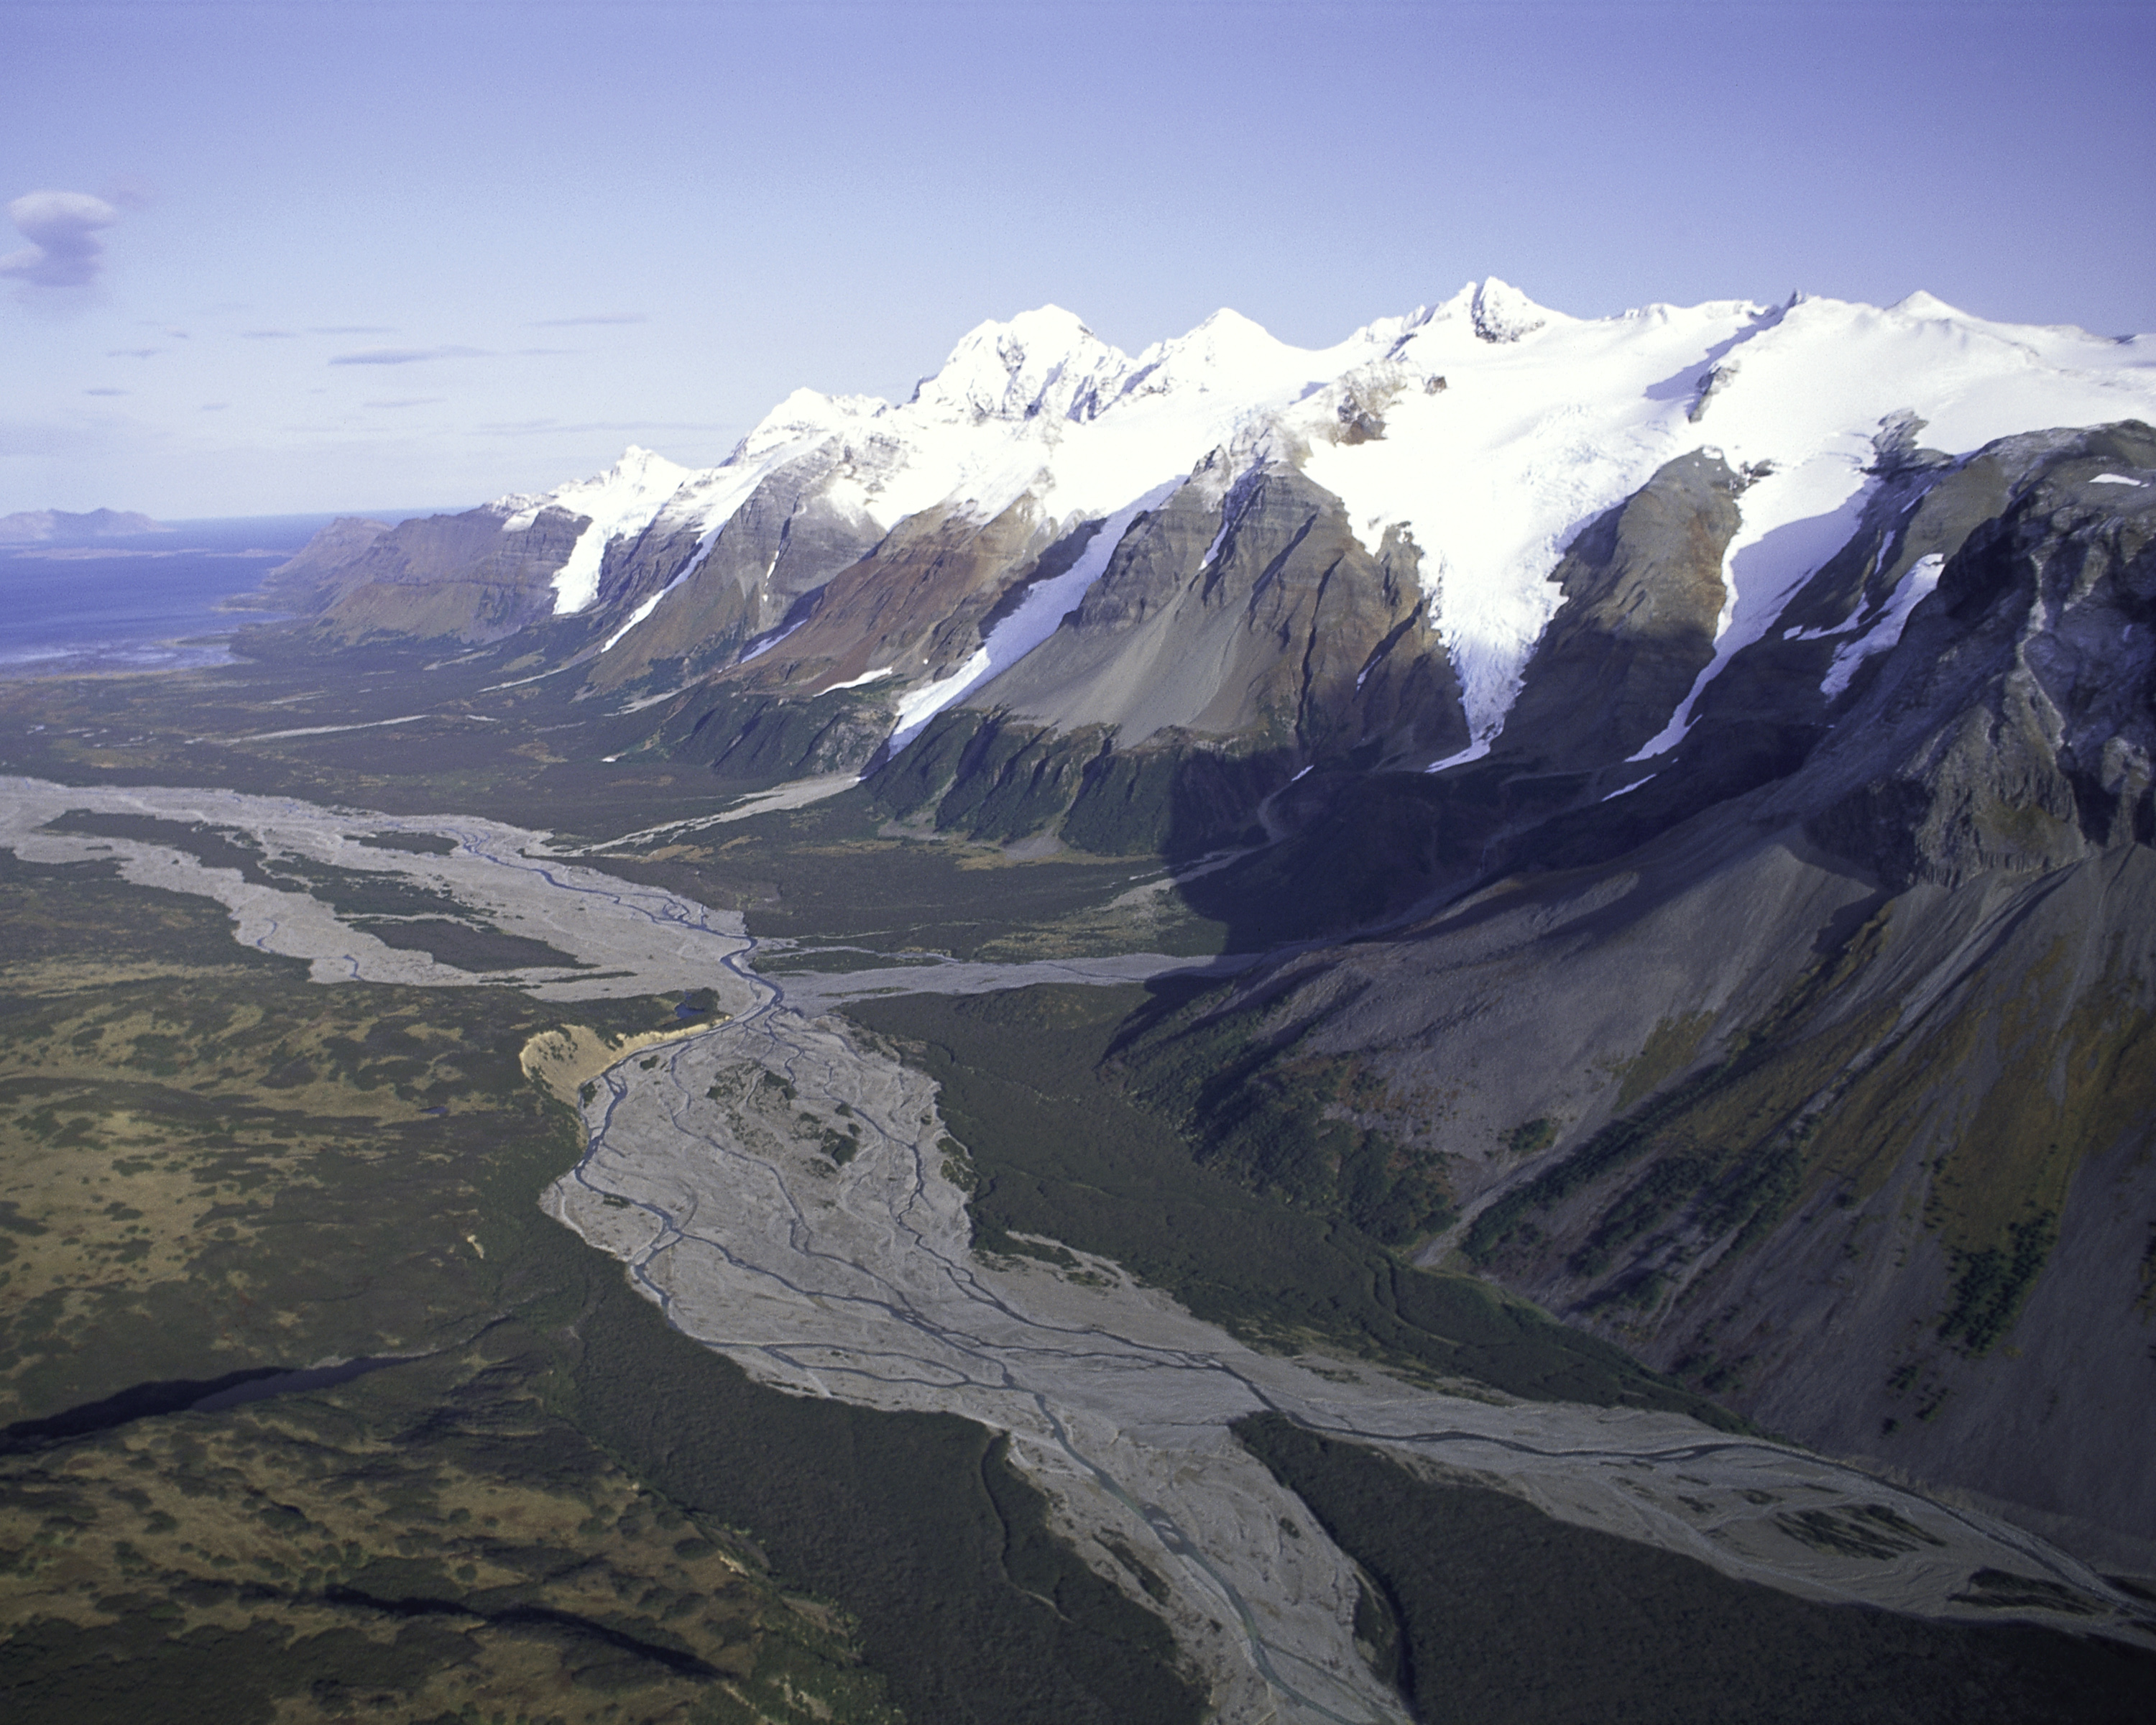 http://upload.wikimedia.org/wikipedia/commons/b/bc/Mountain_Range_Alaska_Peninsula_NWR.jpg